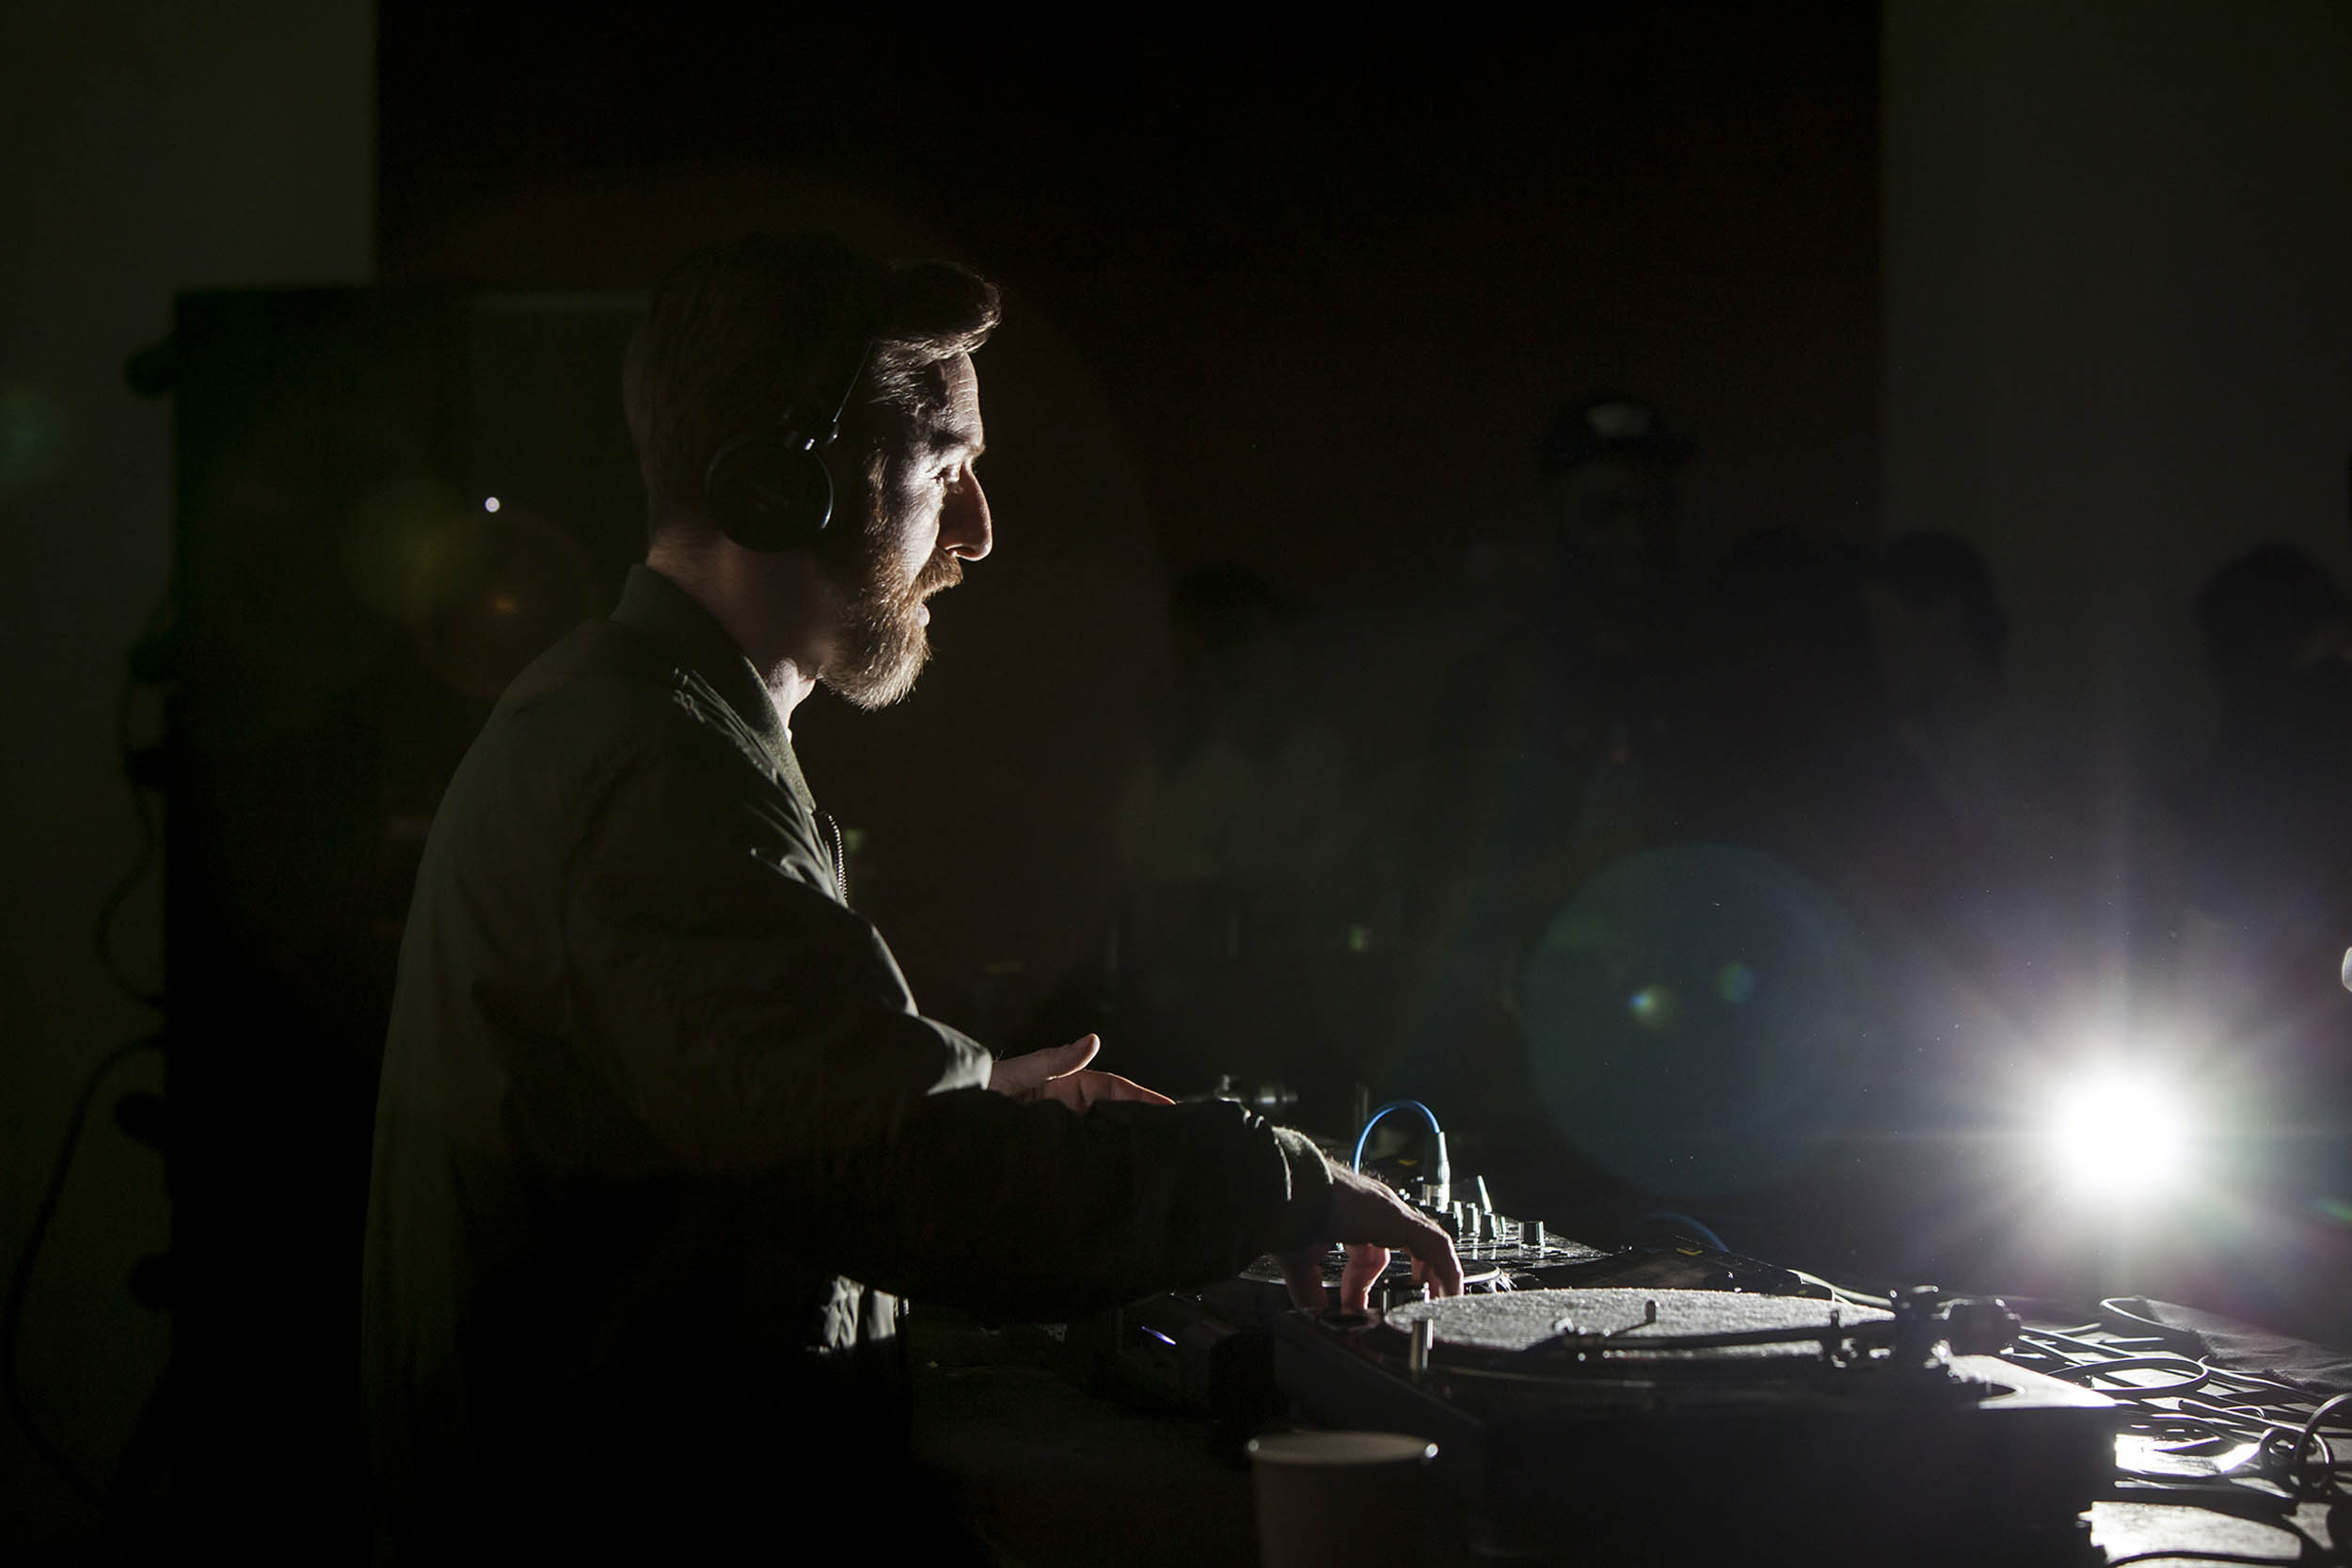 A documentary photograph of a DJ from NTS during an event at Whitworth Art gallery  Photography commissioned by Whitworth Art Gallery